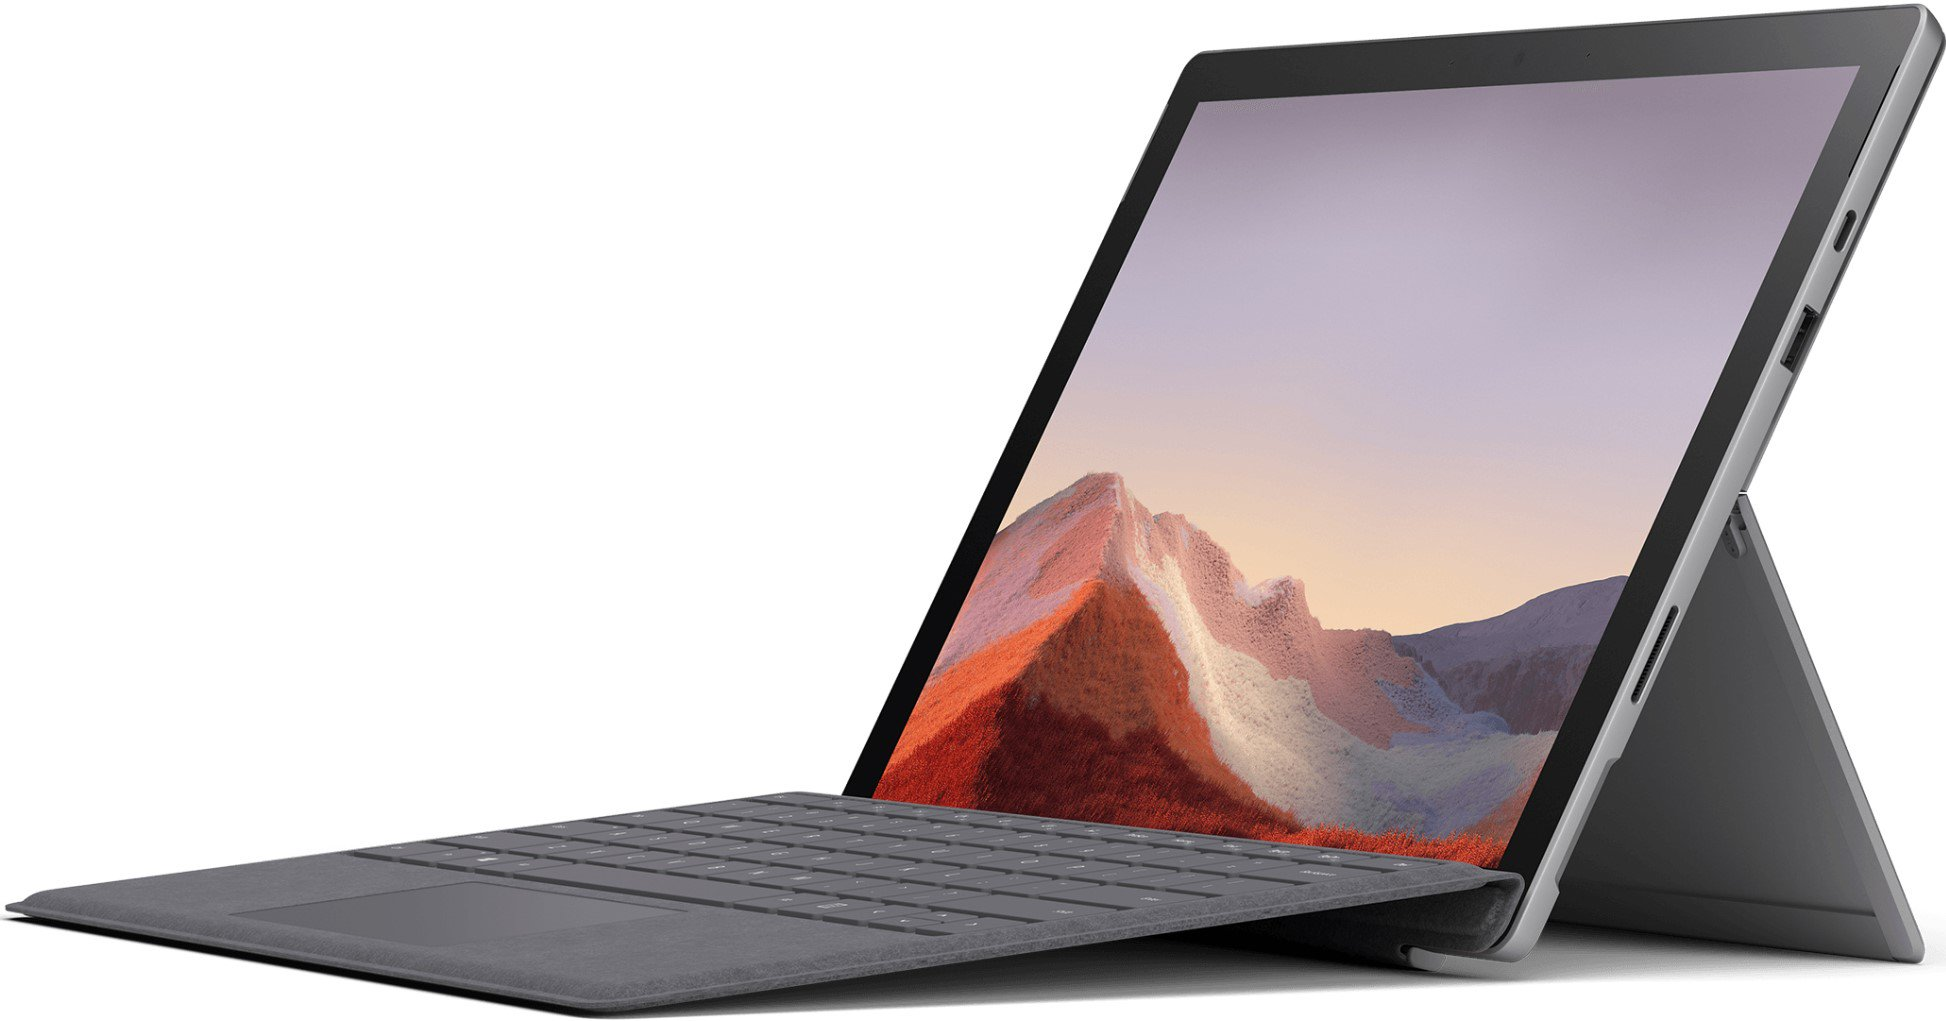 1570101040 25 can you get lte connectivity with the surface pro 7